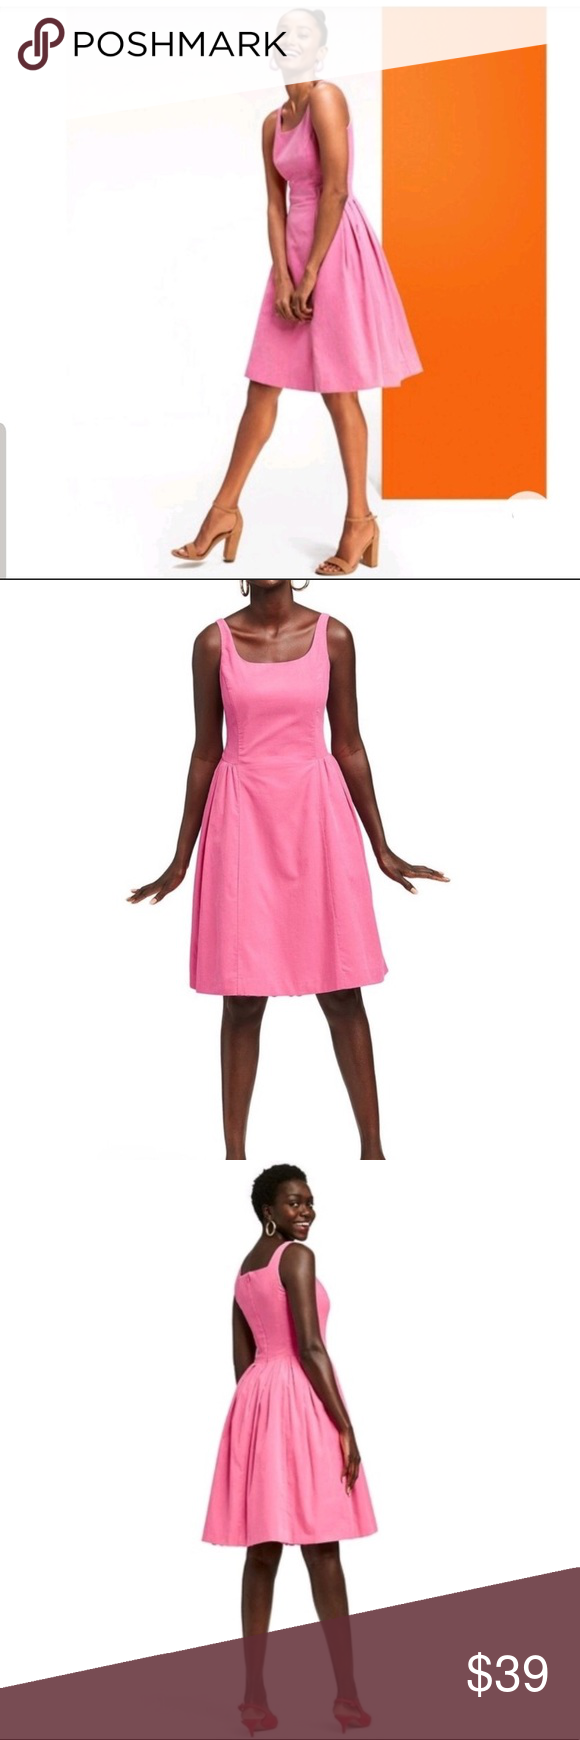 Nwot Isaac Mizrahi Pink Corduroy Square Neck Dress New With Out Tags Sold Out Style From The Target And Isaac Mizr Target Dress Isaac Mizrahi Dress Pink Dress [ 1740 x 580 Pixel ]